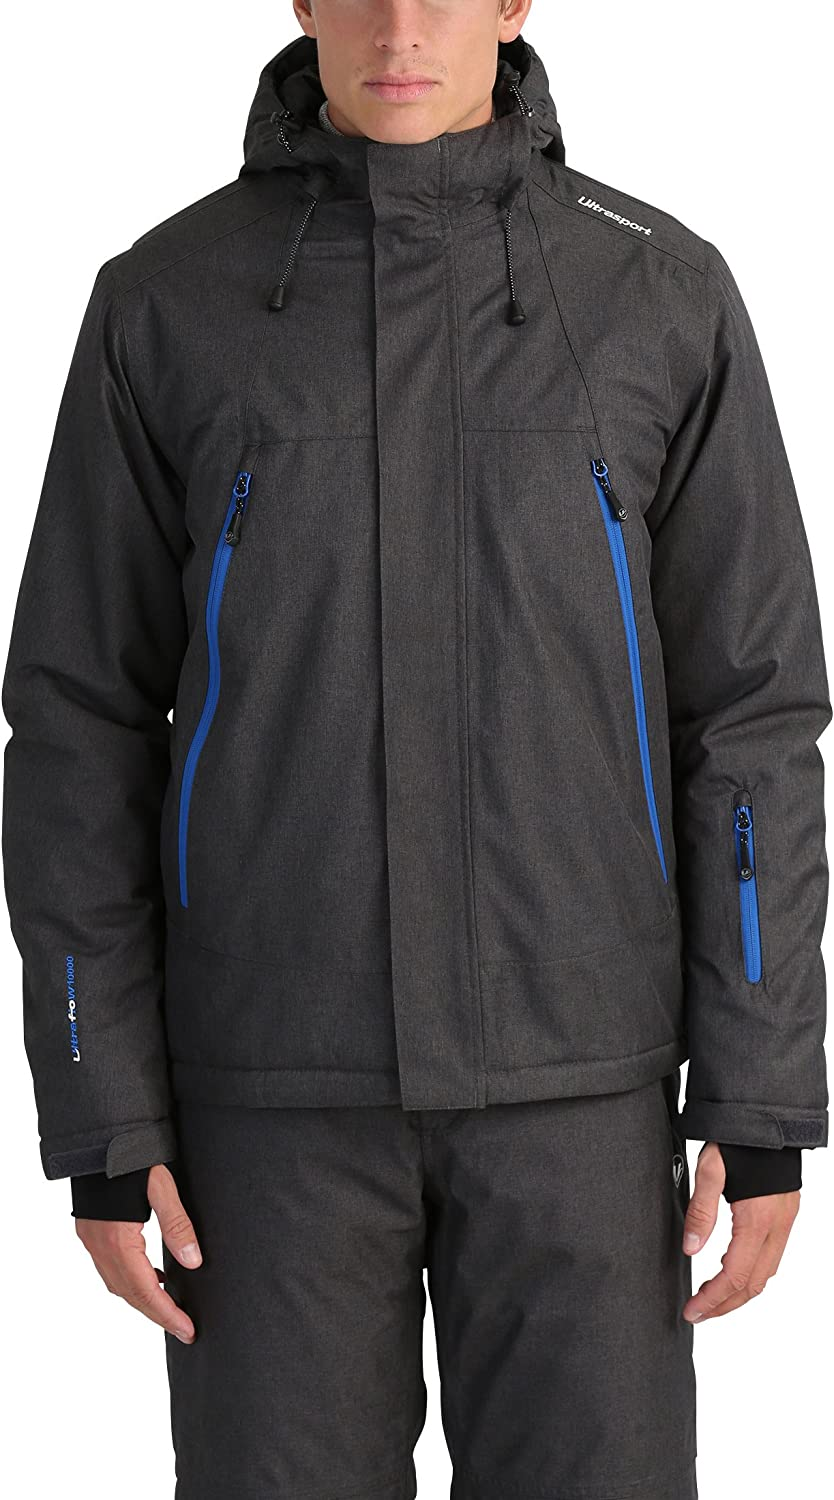 Ultrasport Men's Ski Jacket MelangeCold Wind, Moisture and Snow Resistant Outdoor Jacket with Rubber Snow Skirt, Thumb Loops and Insulated InteriorSnowboard Jacket for Men